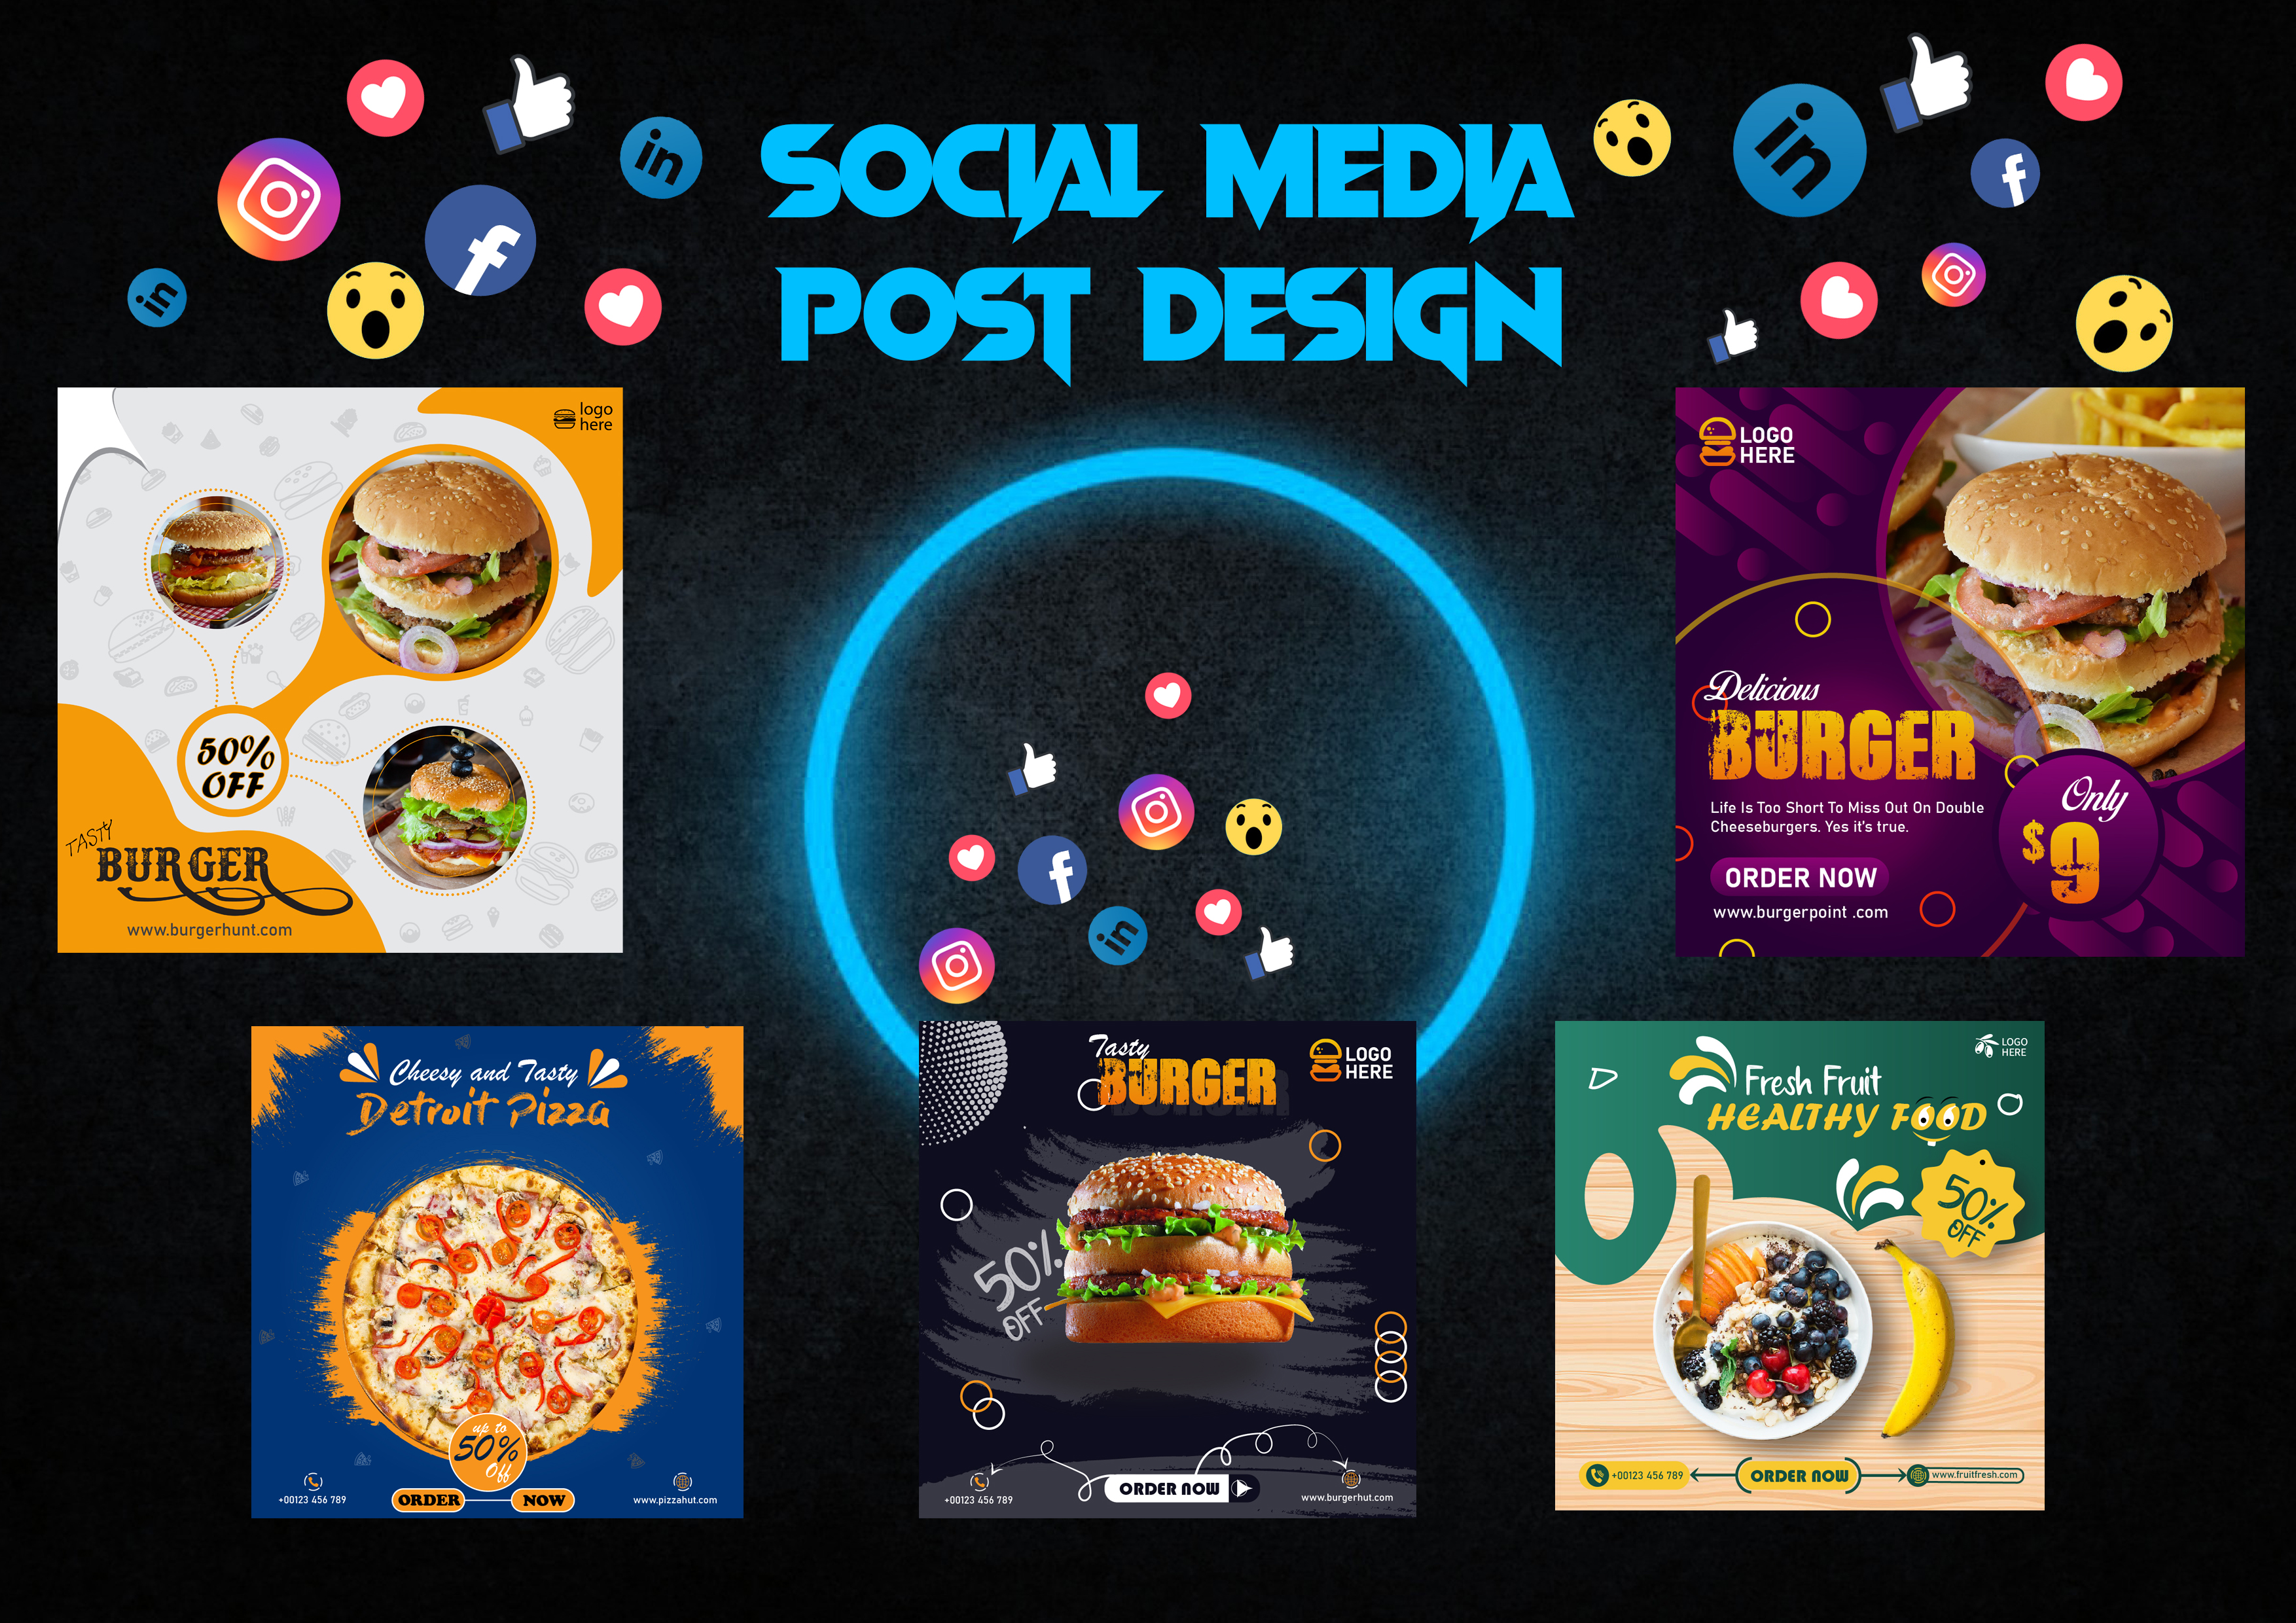 I am an expert of designing social media post and ads